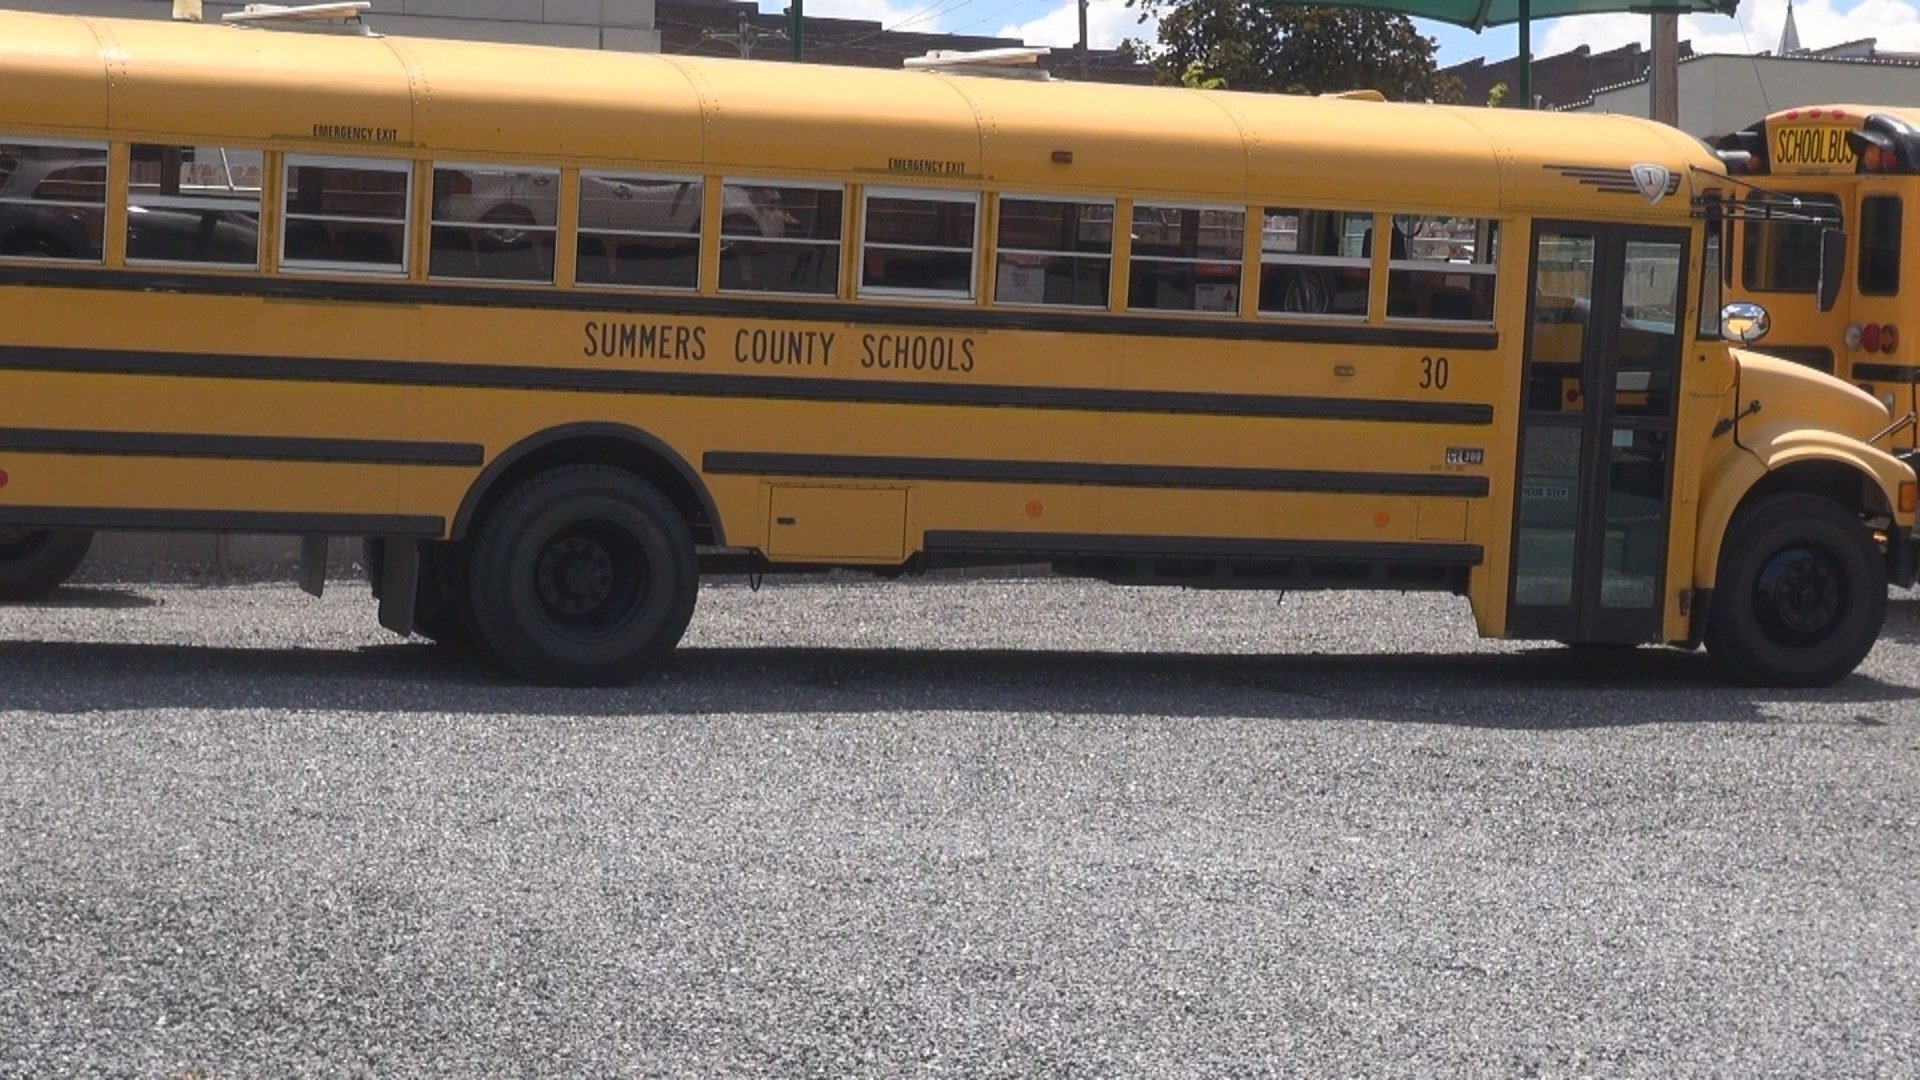 At this time the bus routes for Summers County Schools cannot change.